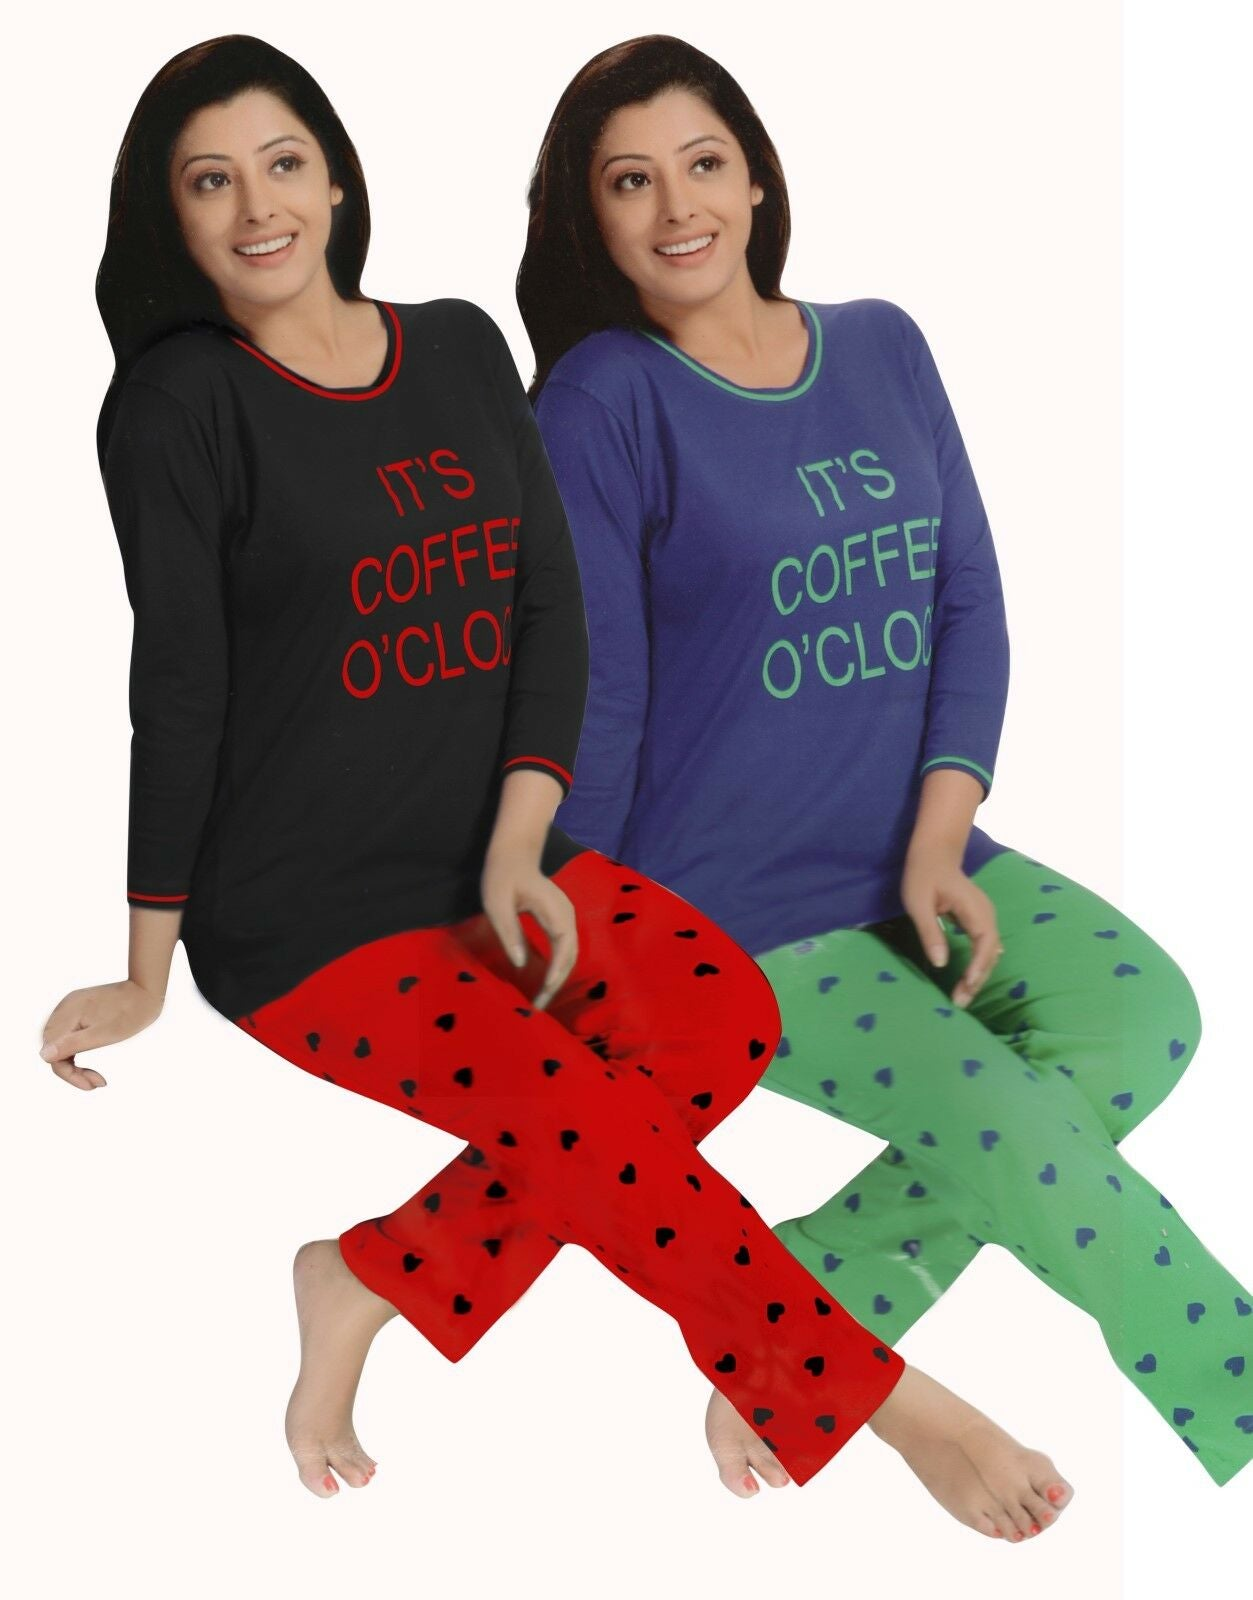 IT'S COFFEE O CLOCK  Pyjama Set Pjs [colour]- Hautie UK, #Nightfashion | #Underfashion